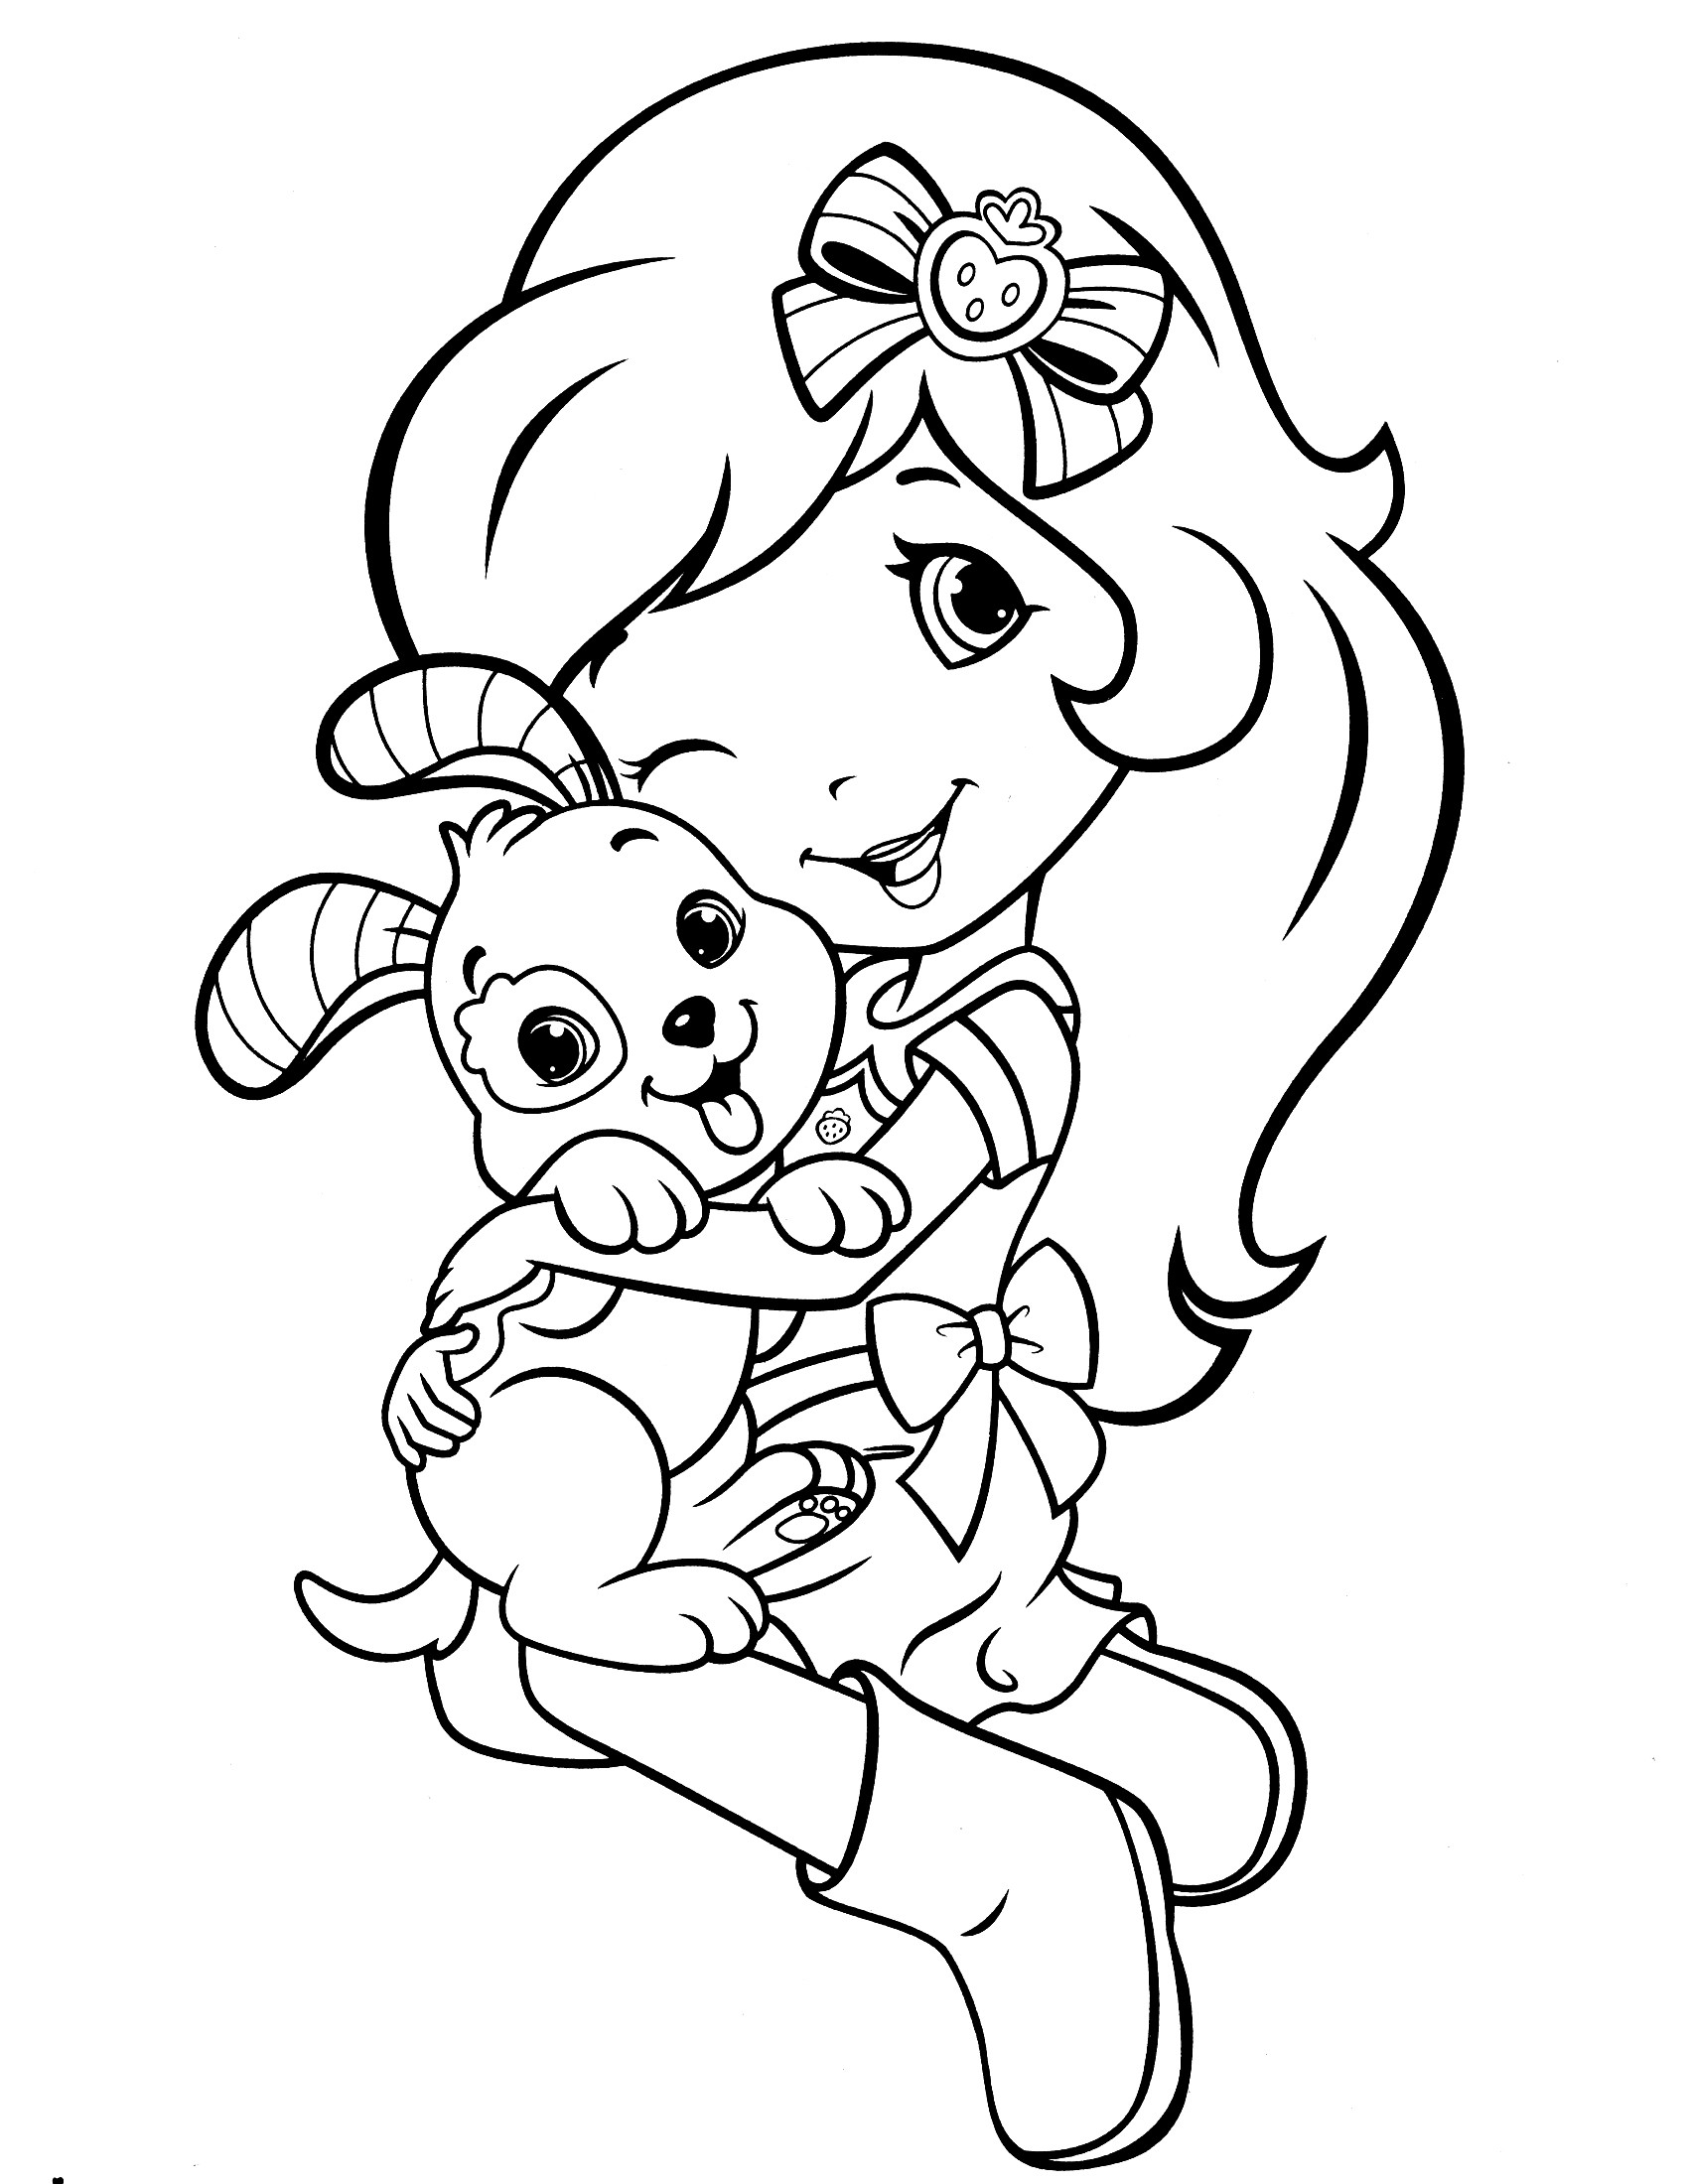 Strawberry Shortcake Coloring Page  Strawberry Shortcake Coloring Pages Cool coloring pages